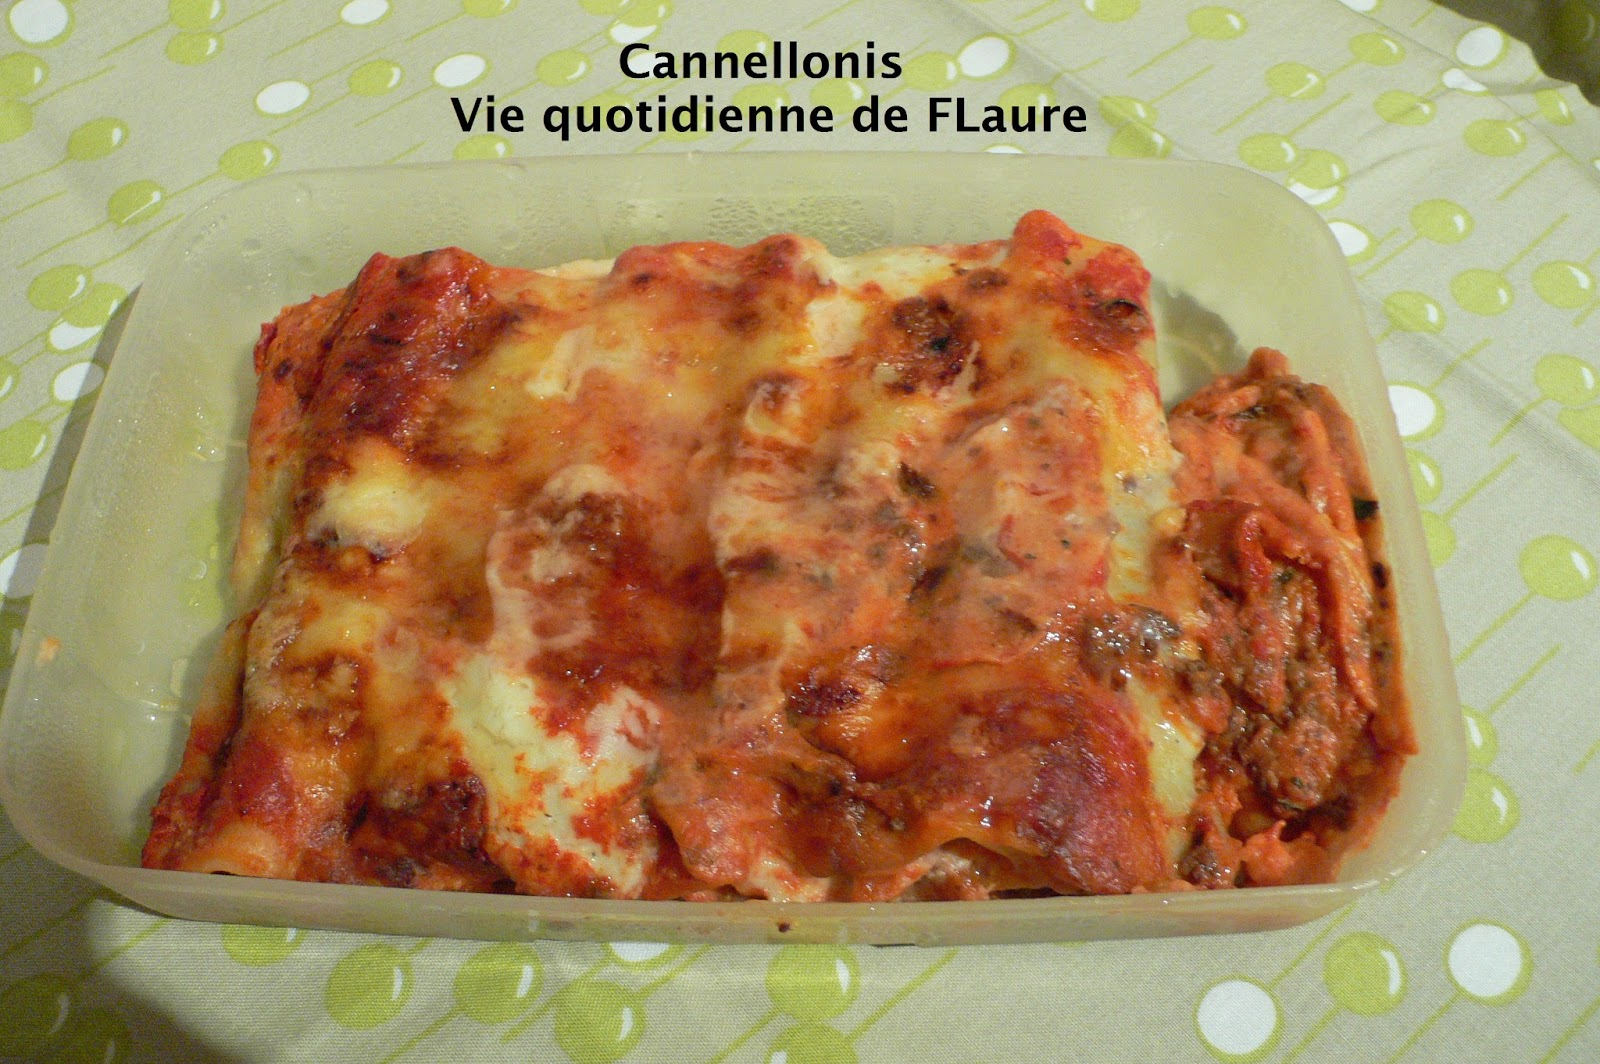 Cannellonis